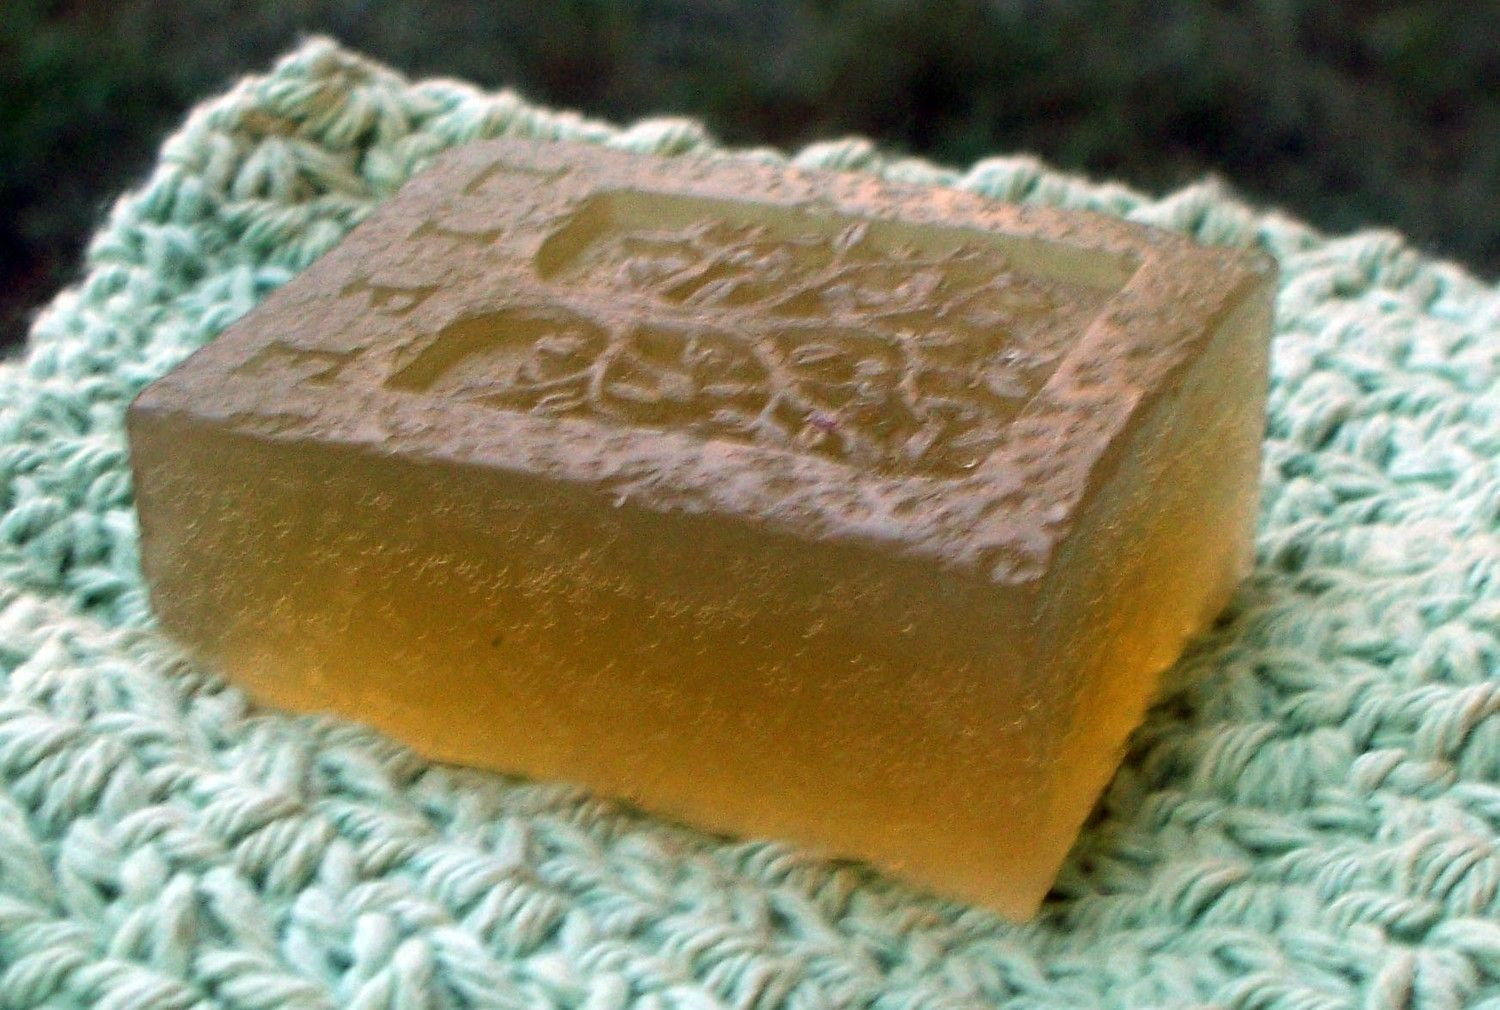 Hand Crafted Tree Of Life Hemp Soap Handcrafted Rare And